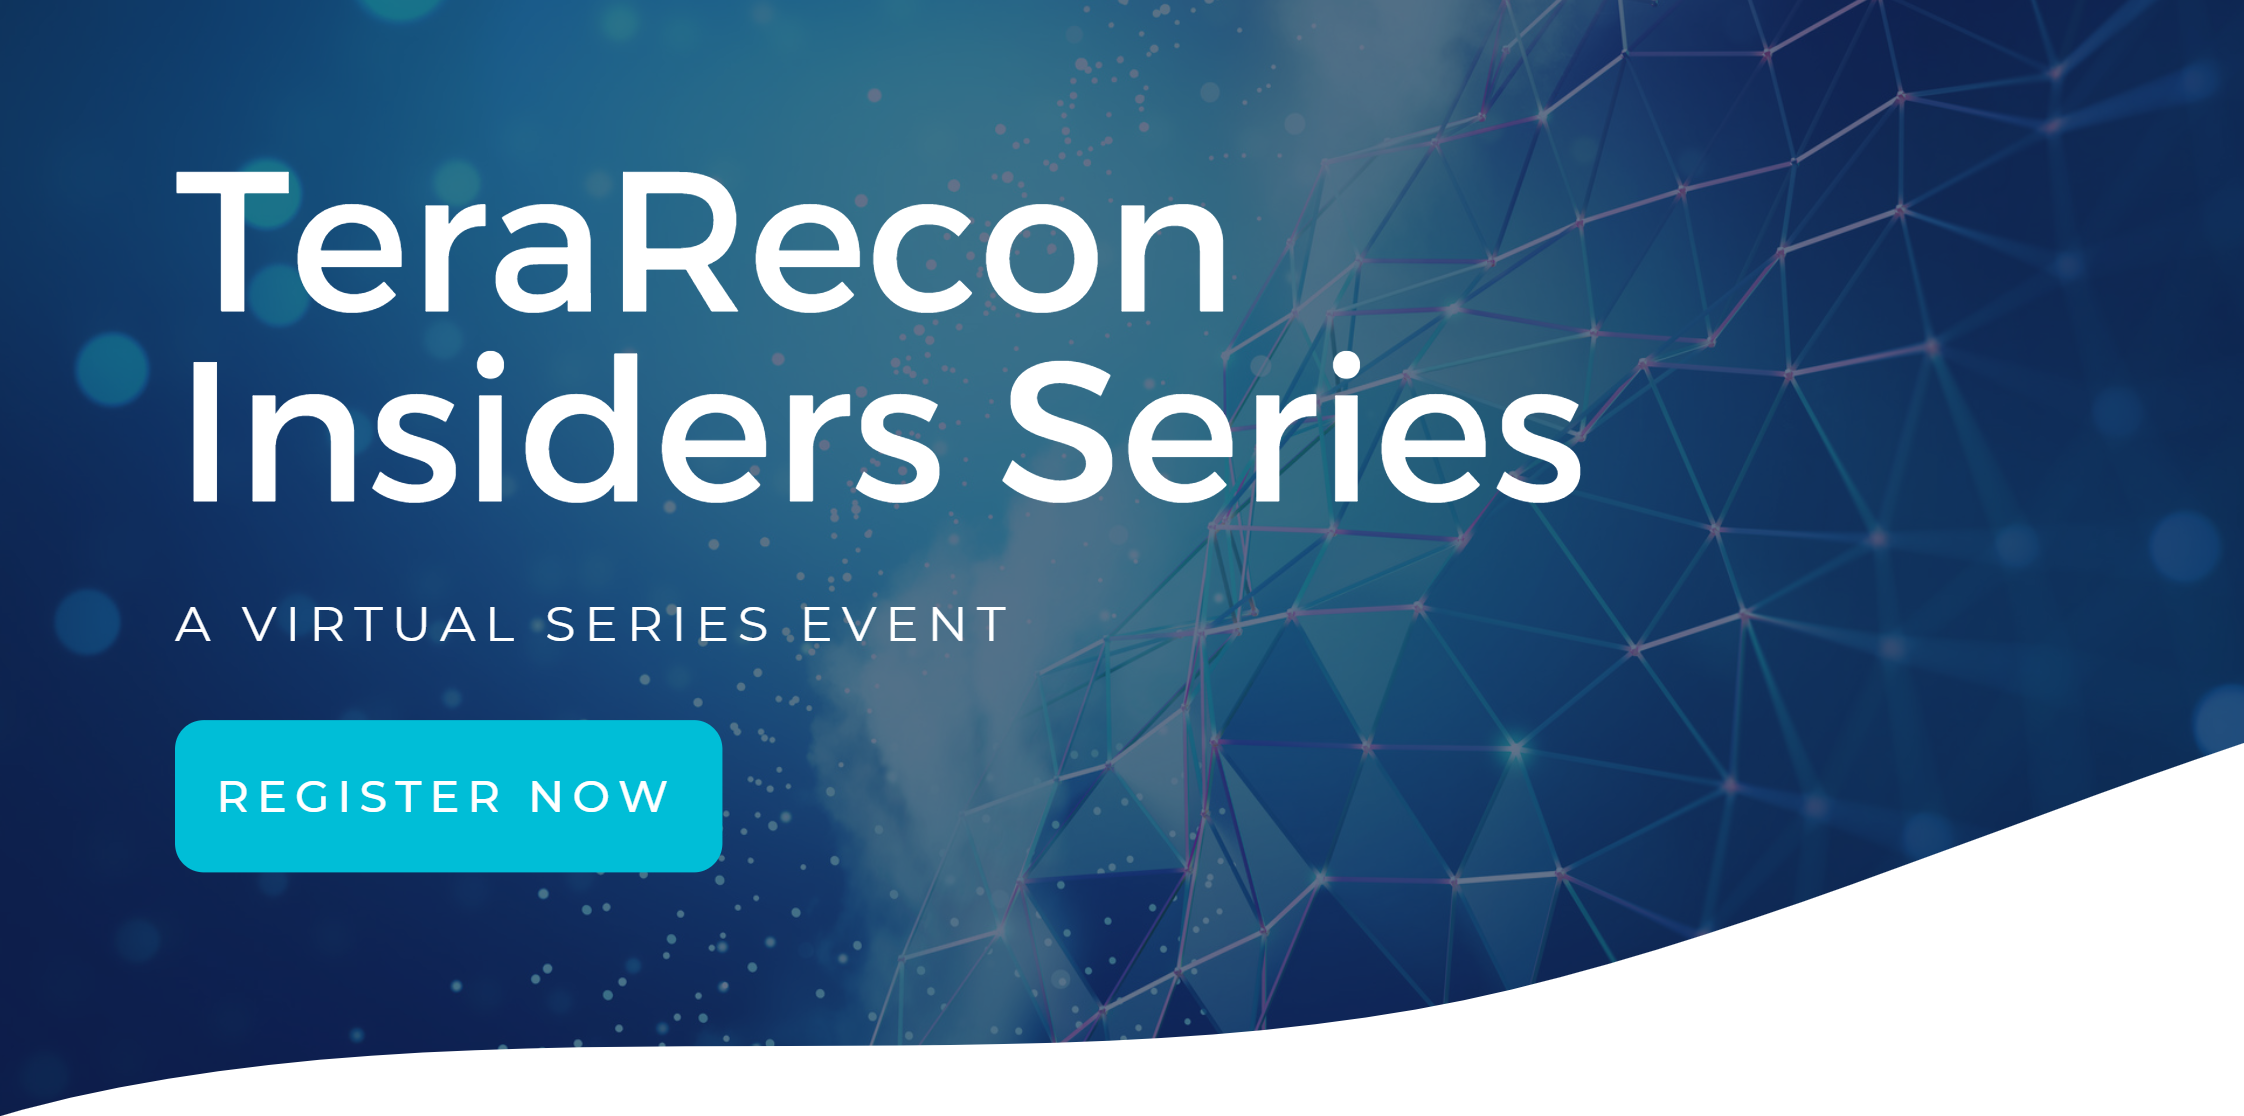 TeraRecon Insiders Series